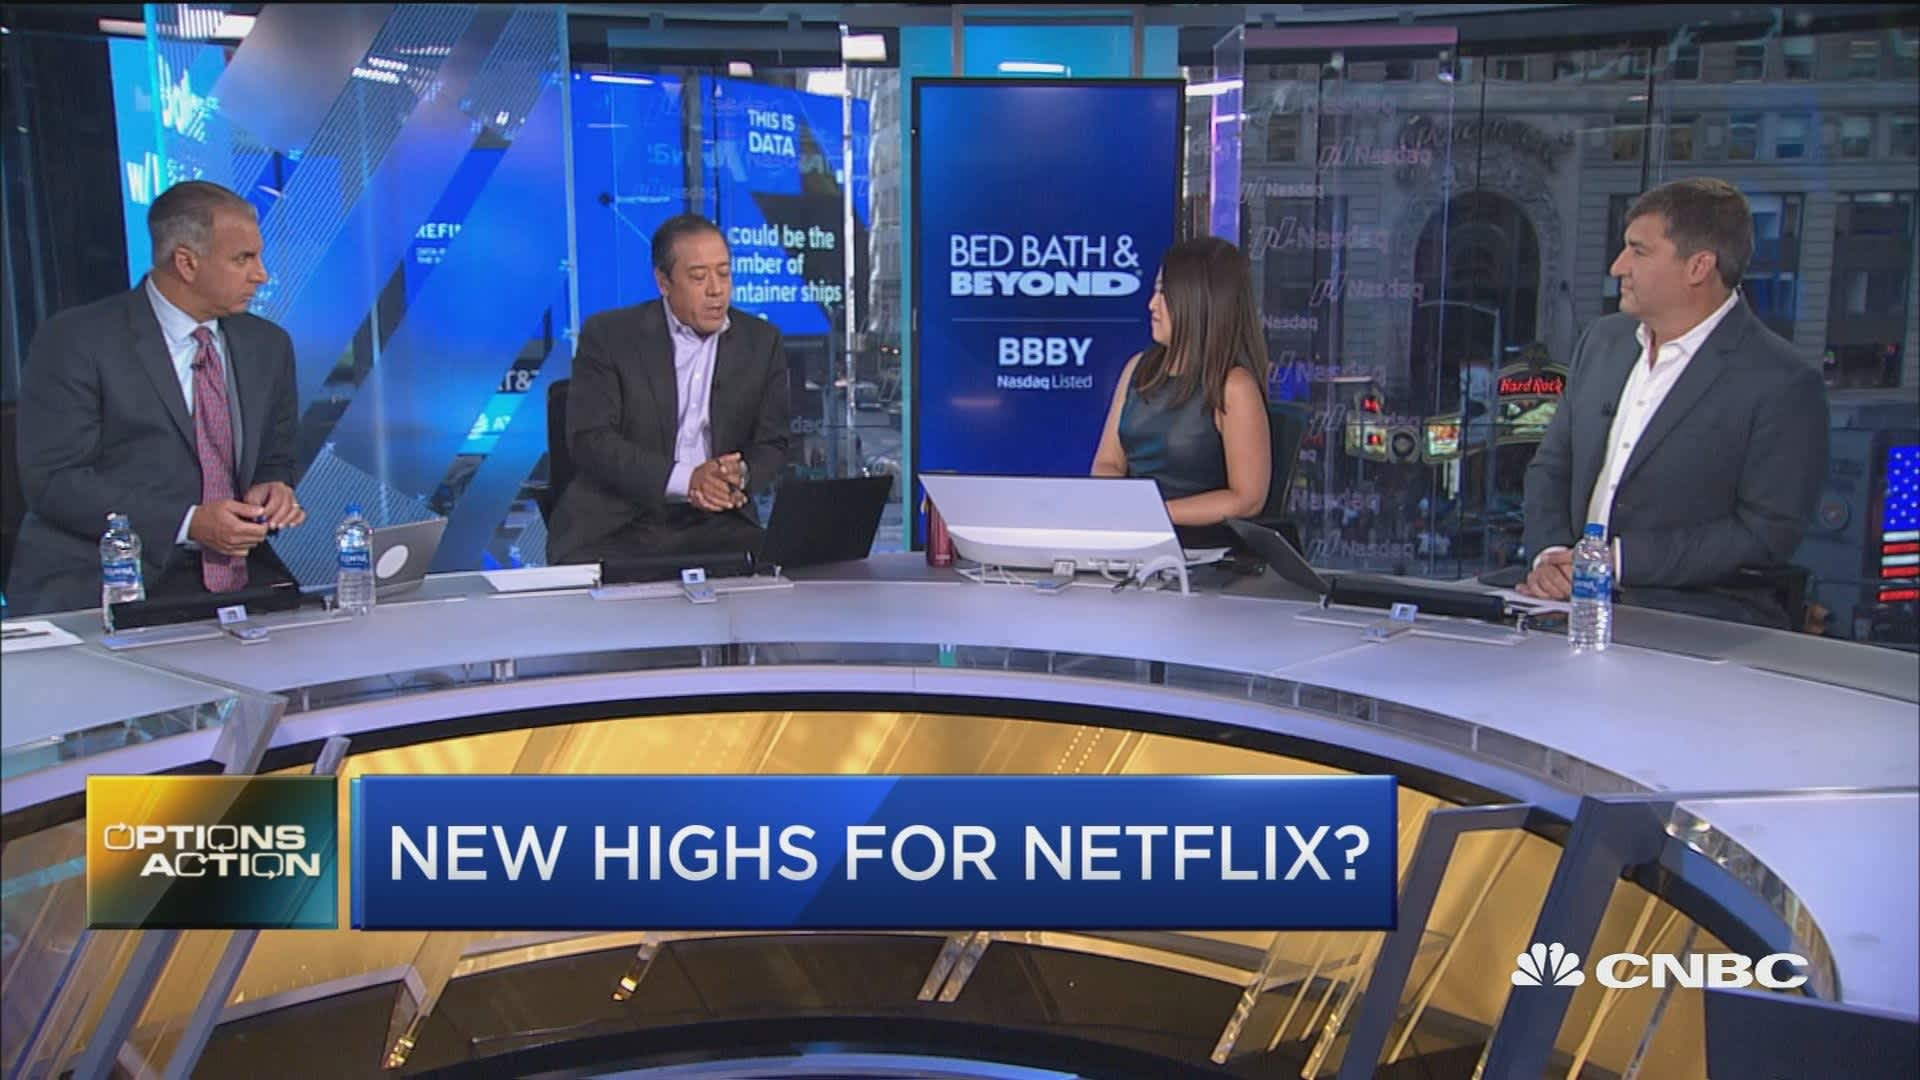 Netflix set to report earnings next week and one trader thinks new highs  are next